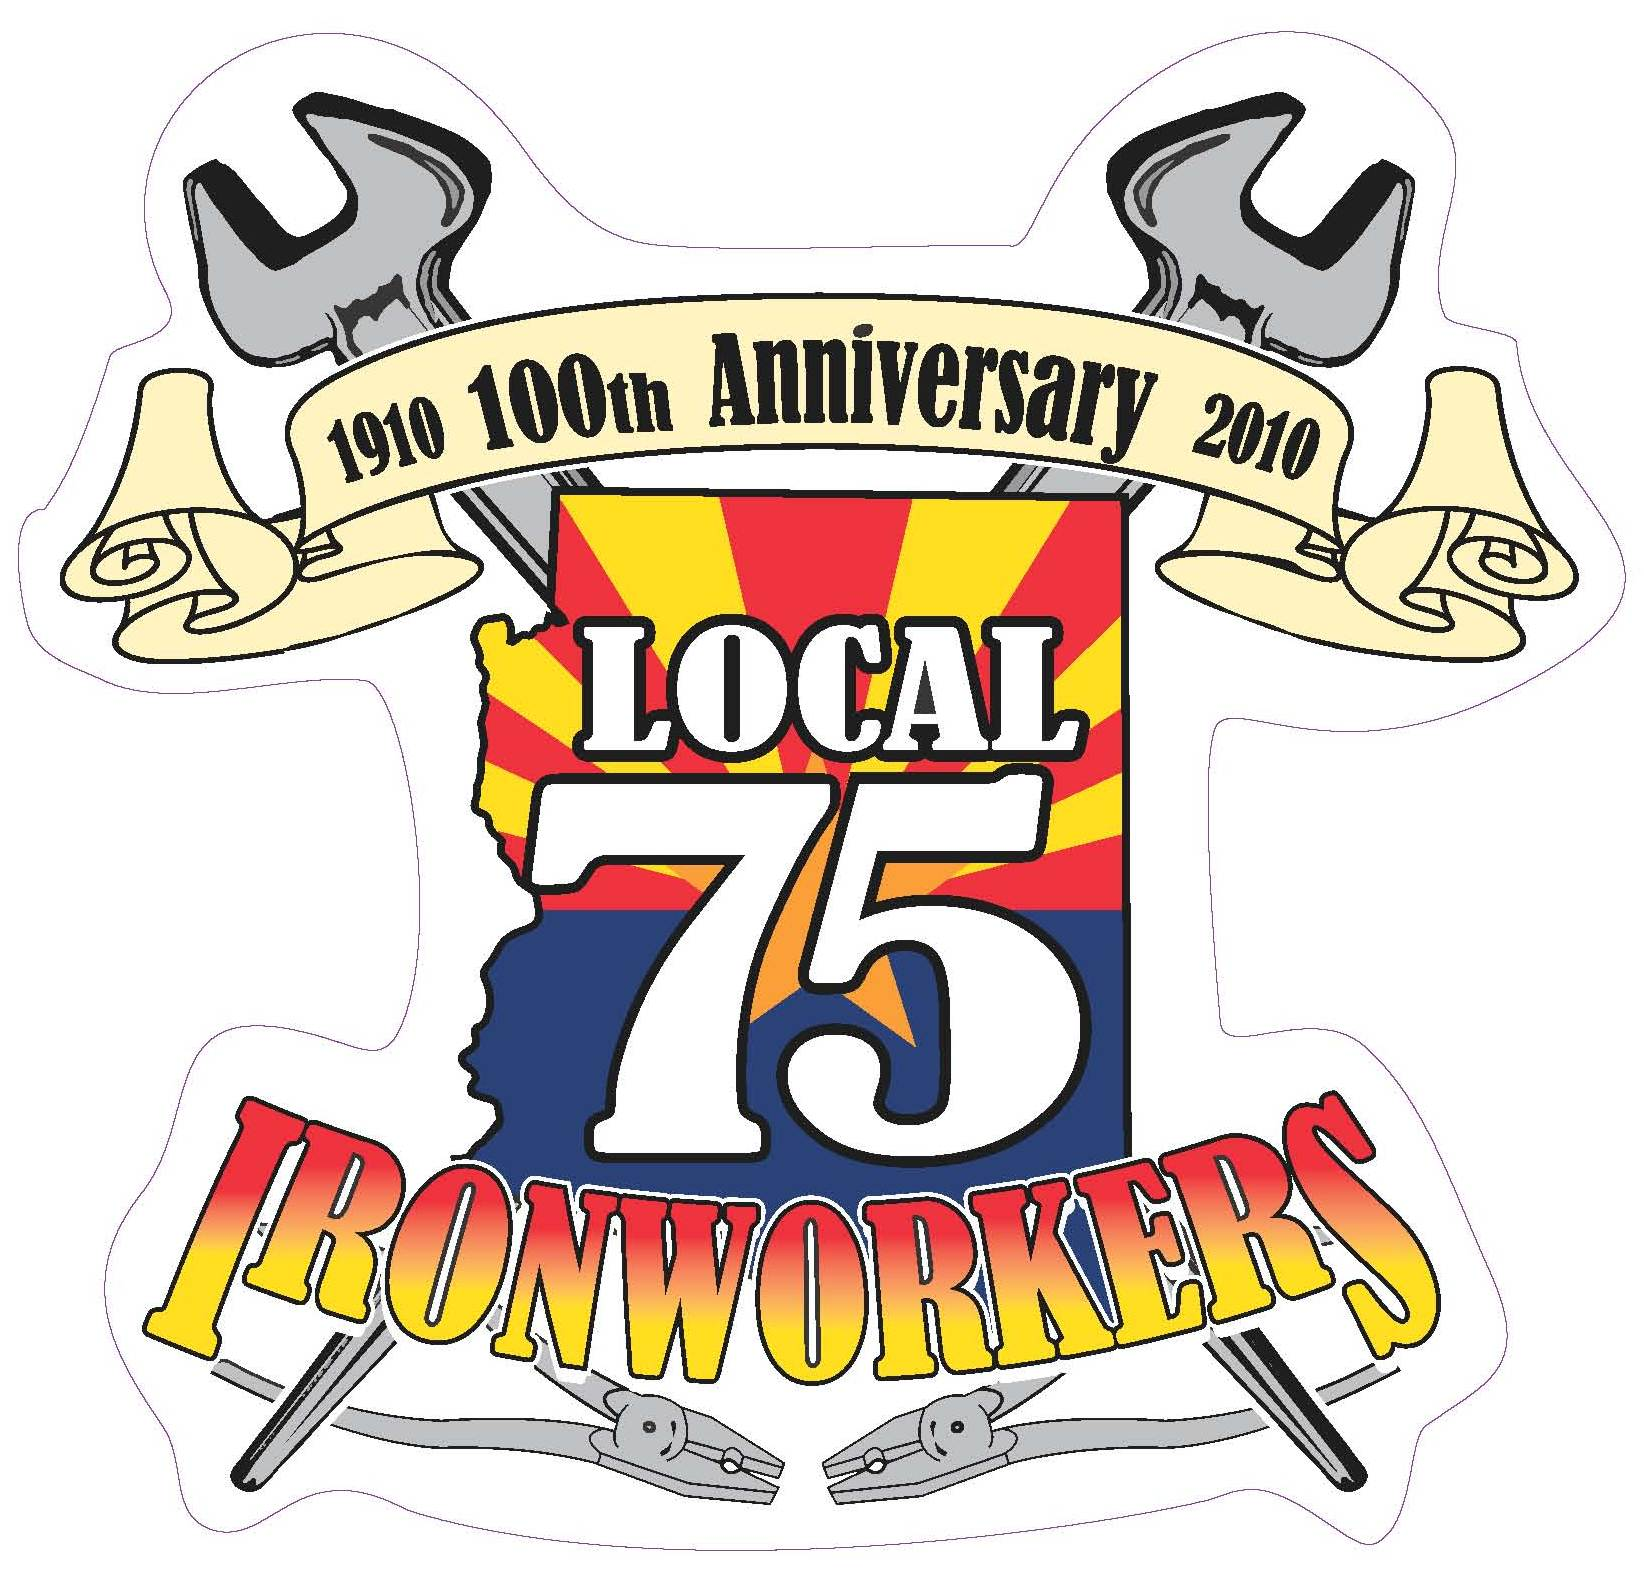 Ironworkers Local 75